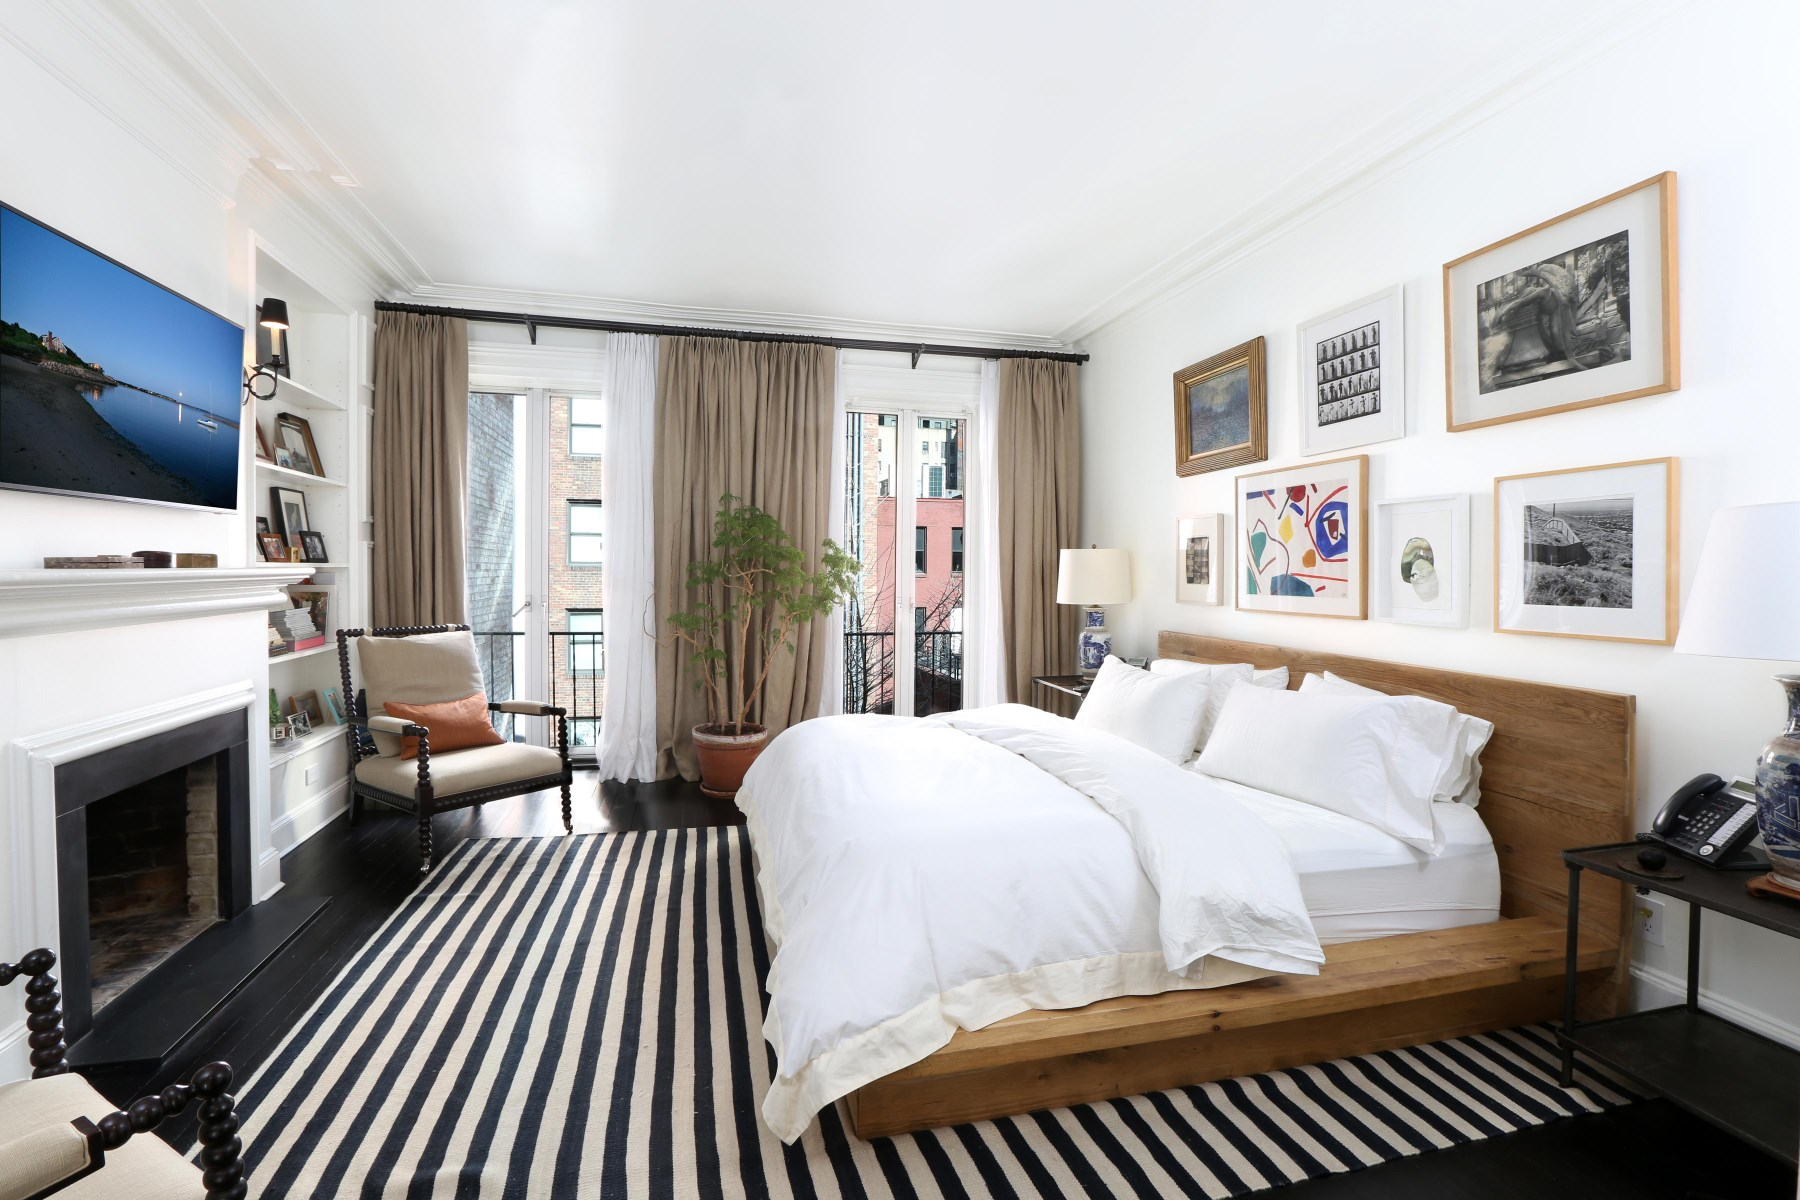 Additional photo for property listing at 115 East 38th Street 115 East 38th Street New York, New York 10016 United States